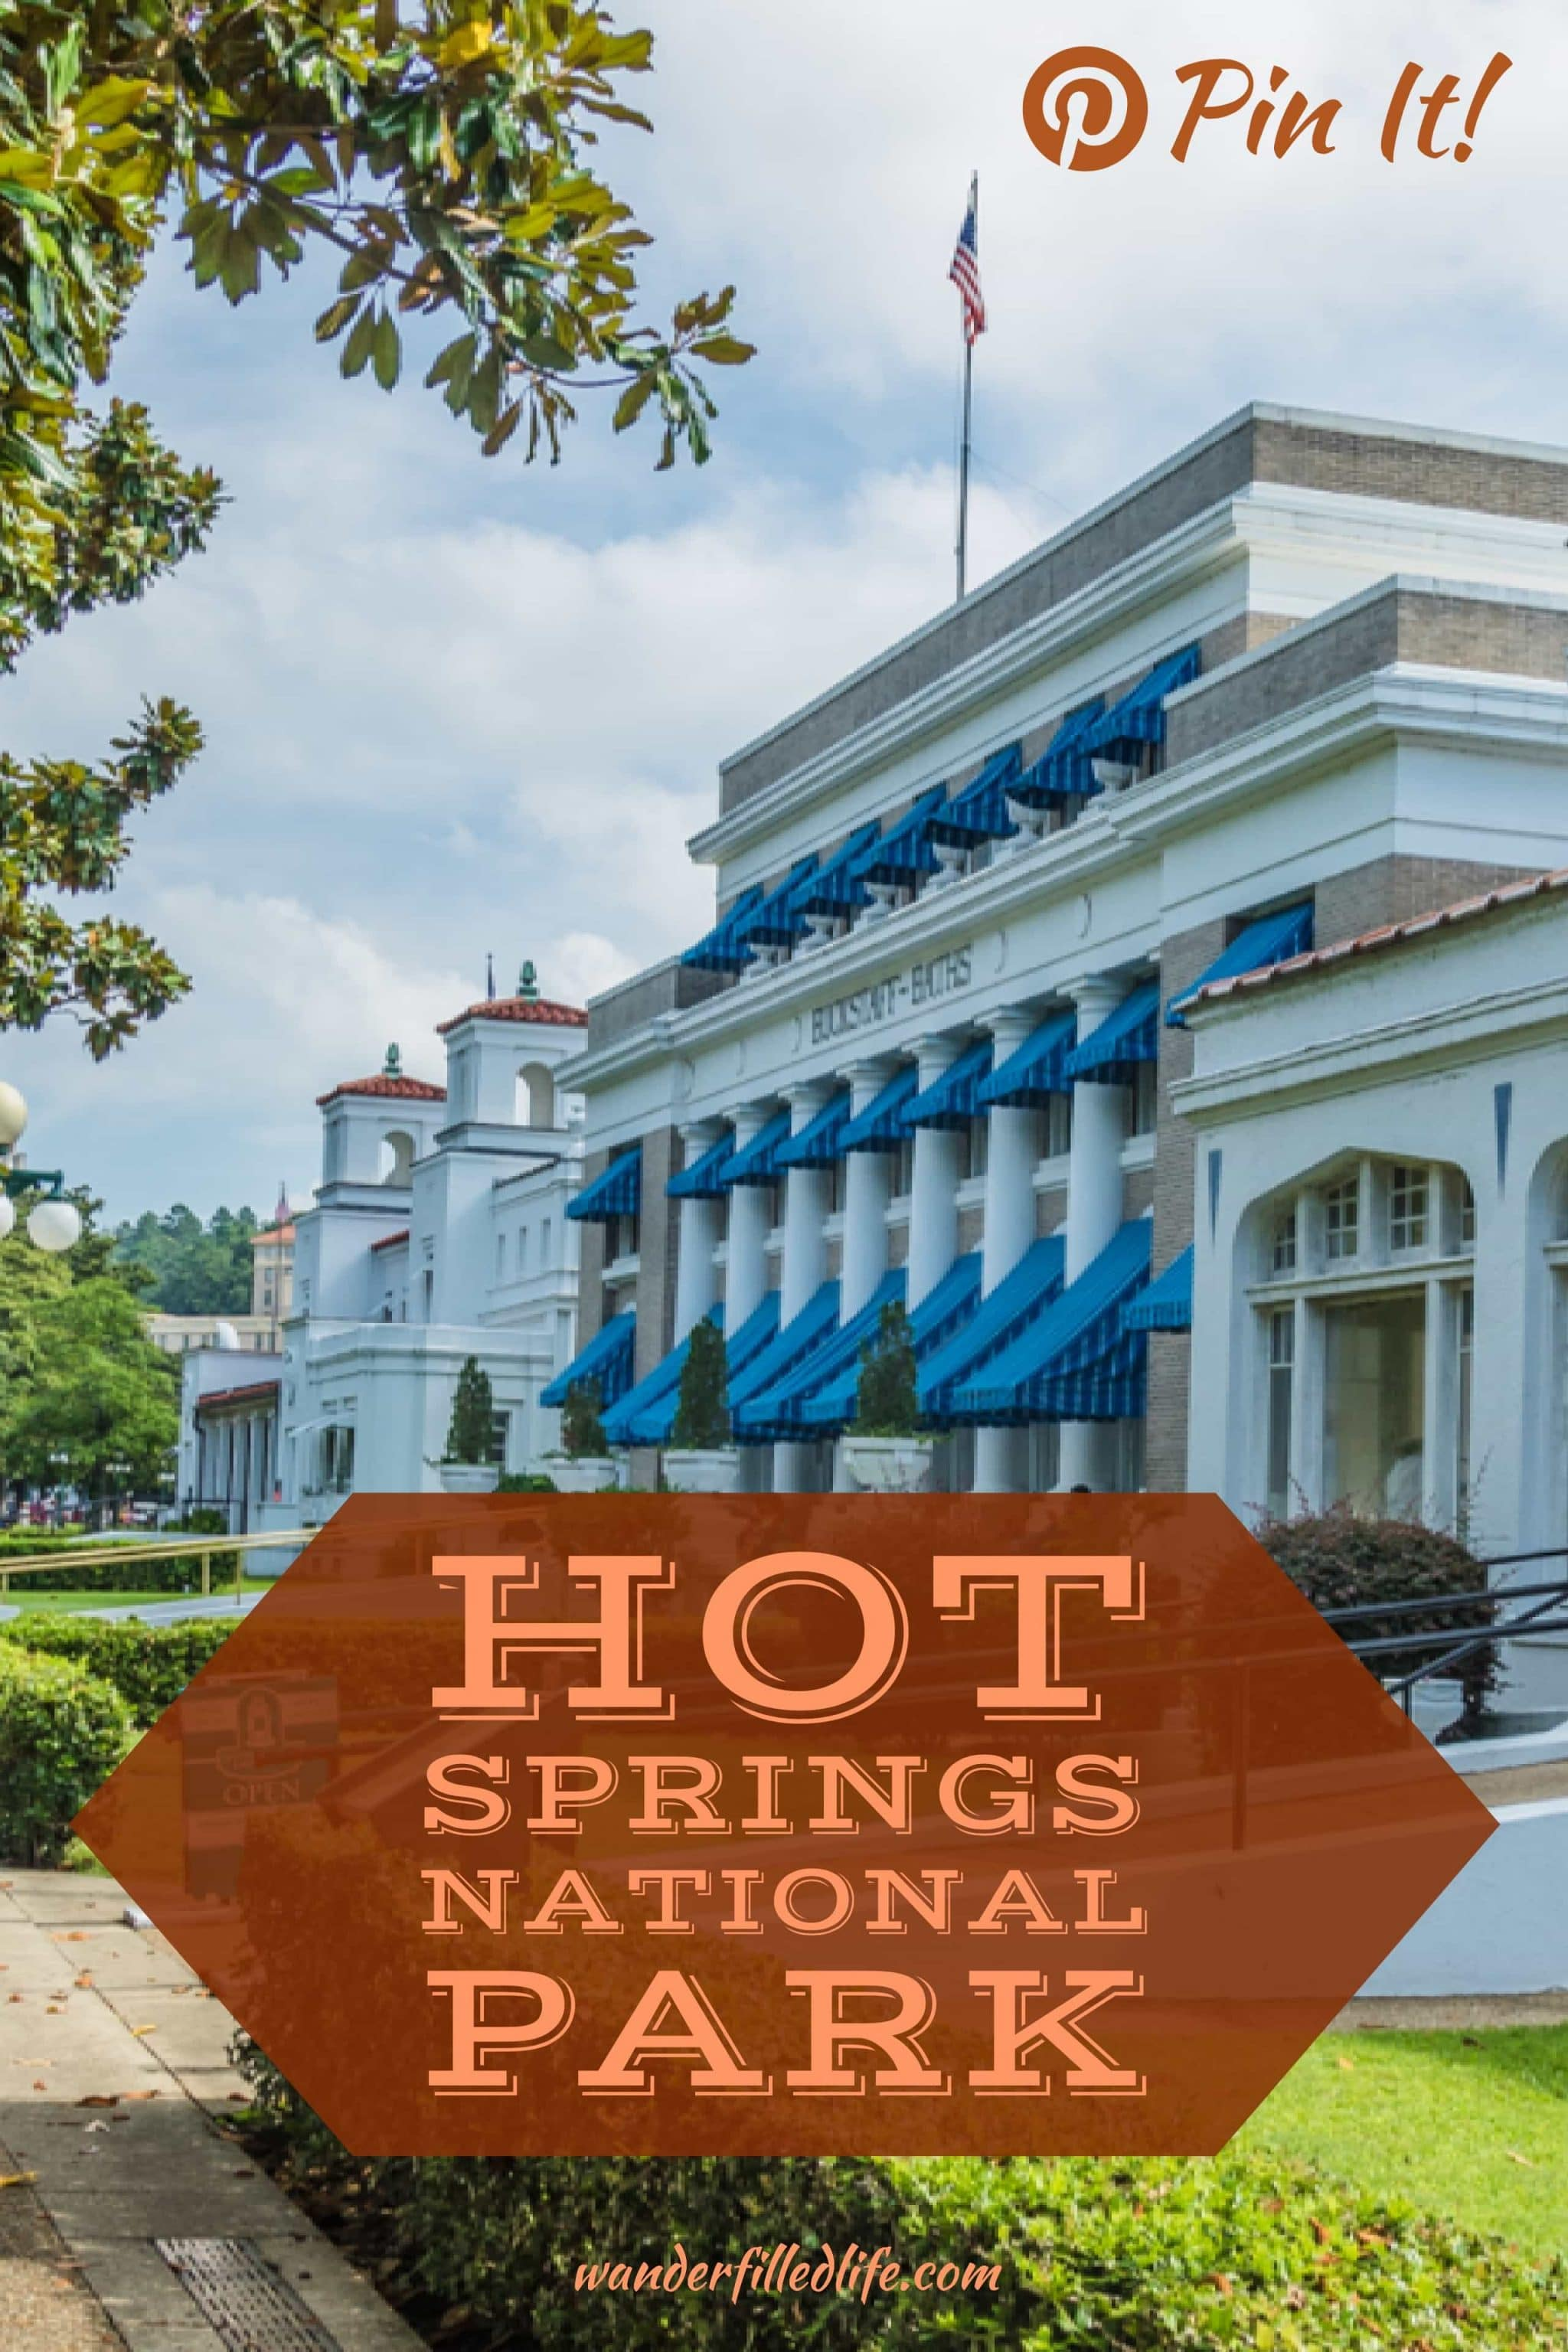 Hot Springs may be the smallest US National Park, but it is full of interesting features: thermal baths, a brewery and seamless integration with the town.